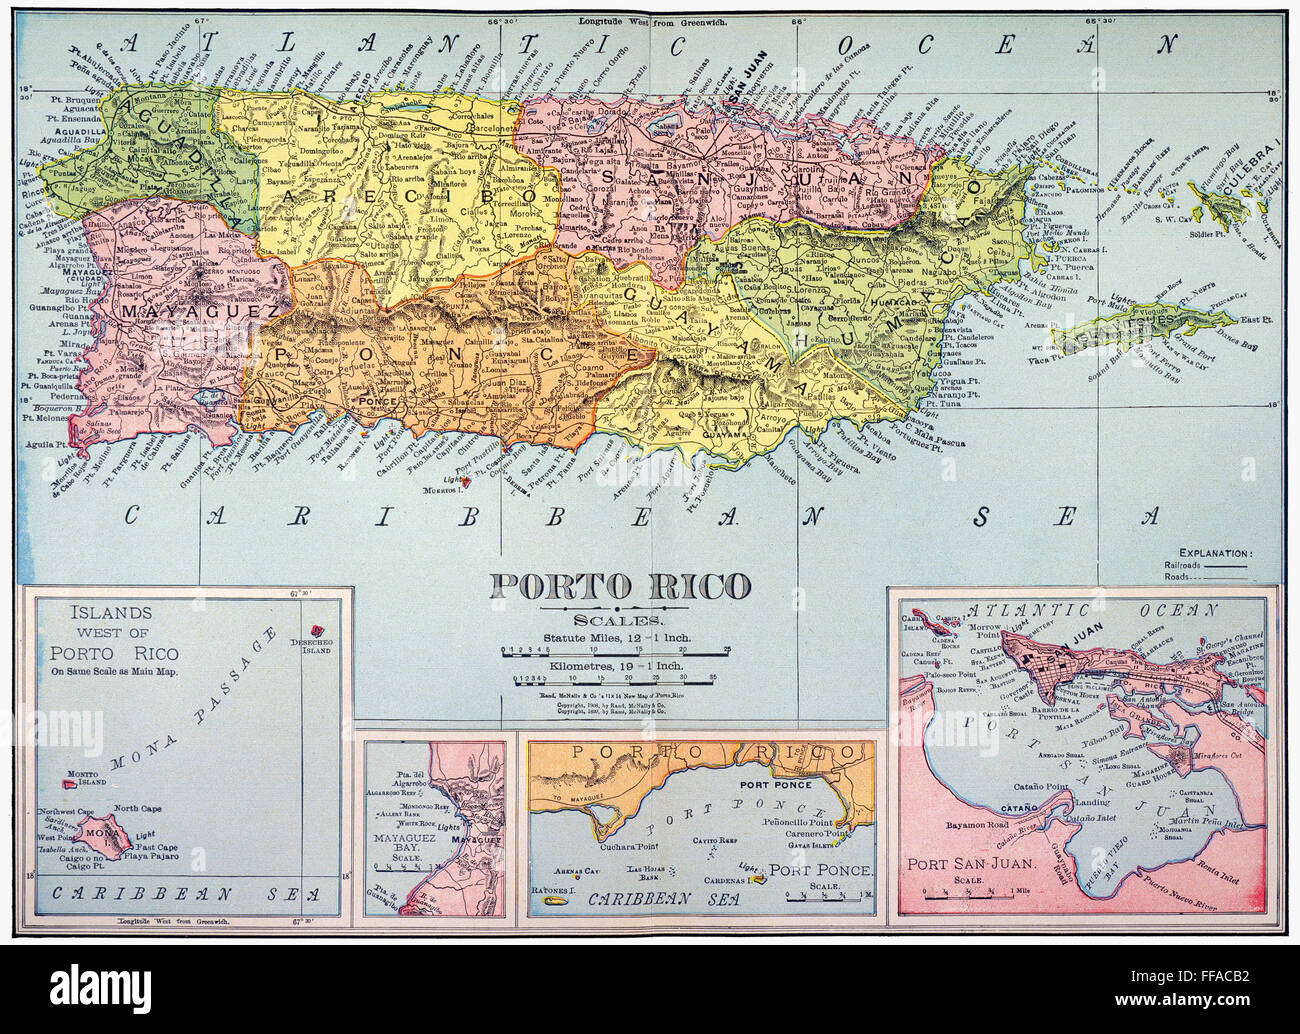 MAP: PUERTO RICO, 1900. /nMap of Puerto Rico printed in the United ...